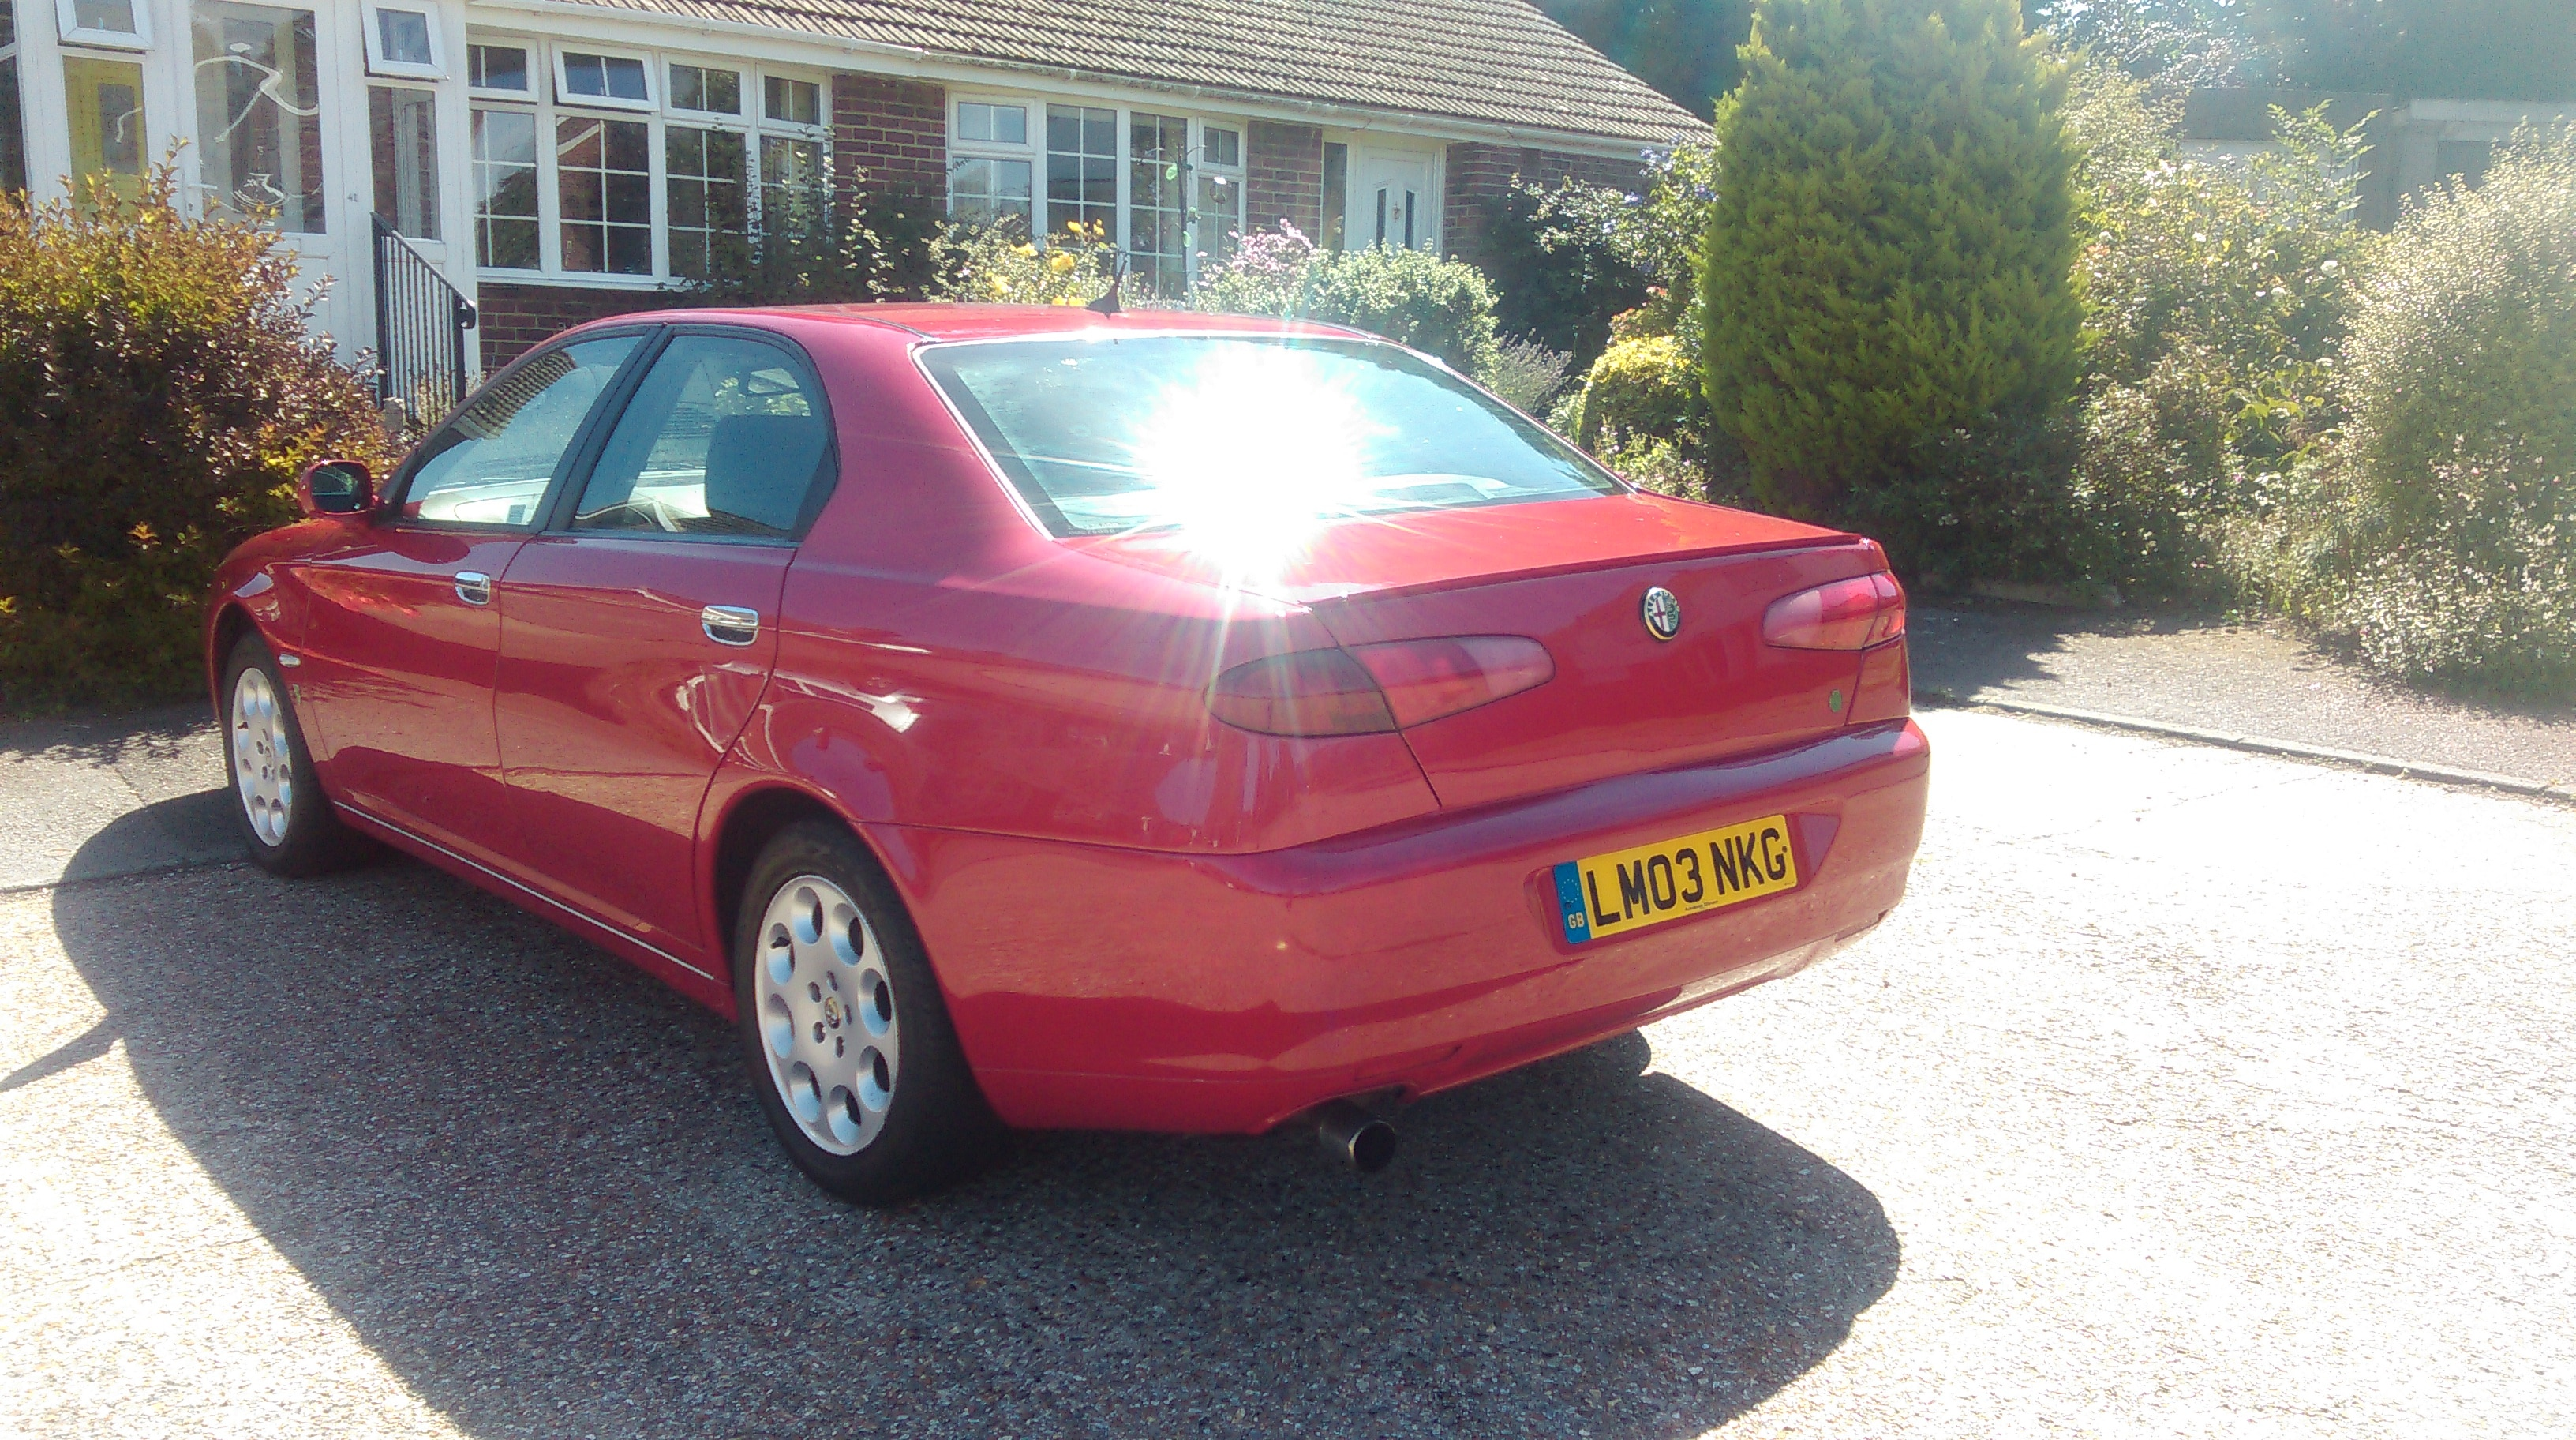 Alfa Romeo, Alfa Romeo 166, 166, Alfisti, used car, classic car, retro car, motoring, automotive, ebay, ebay motors, buying guide, saloon car, italian car, not2grand, www.not2grand.co.uk